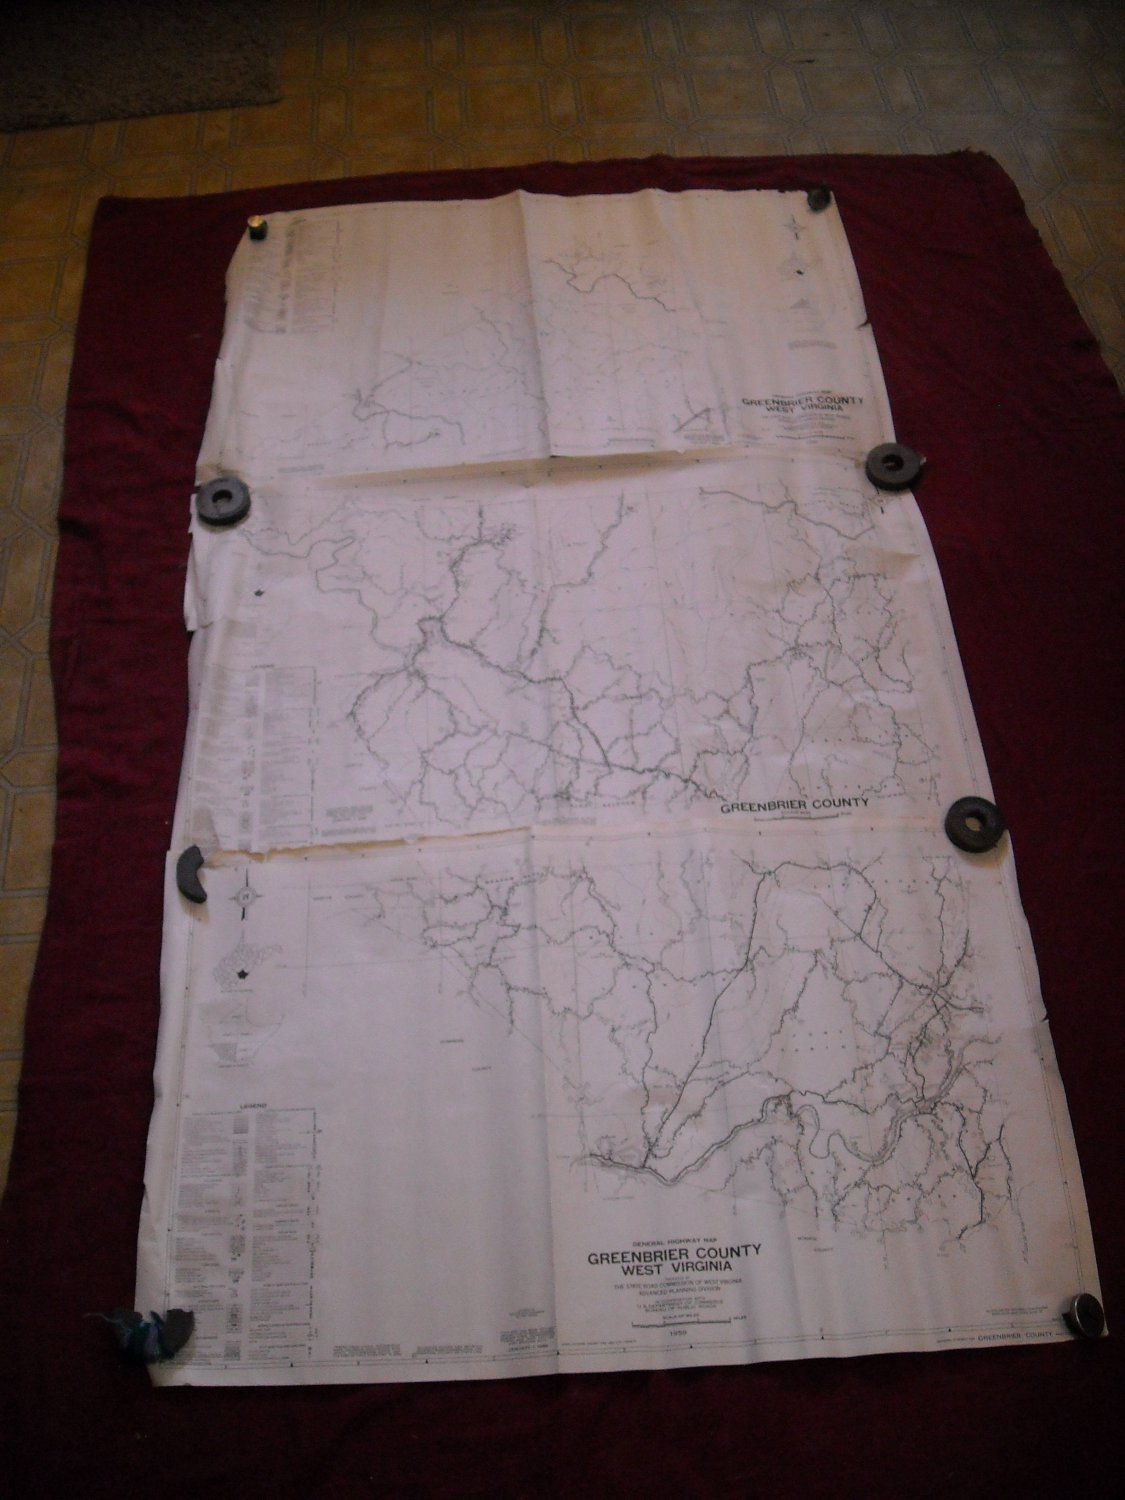 GreenBrier County West Virginia 1959 set of 5 General Highway Map